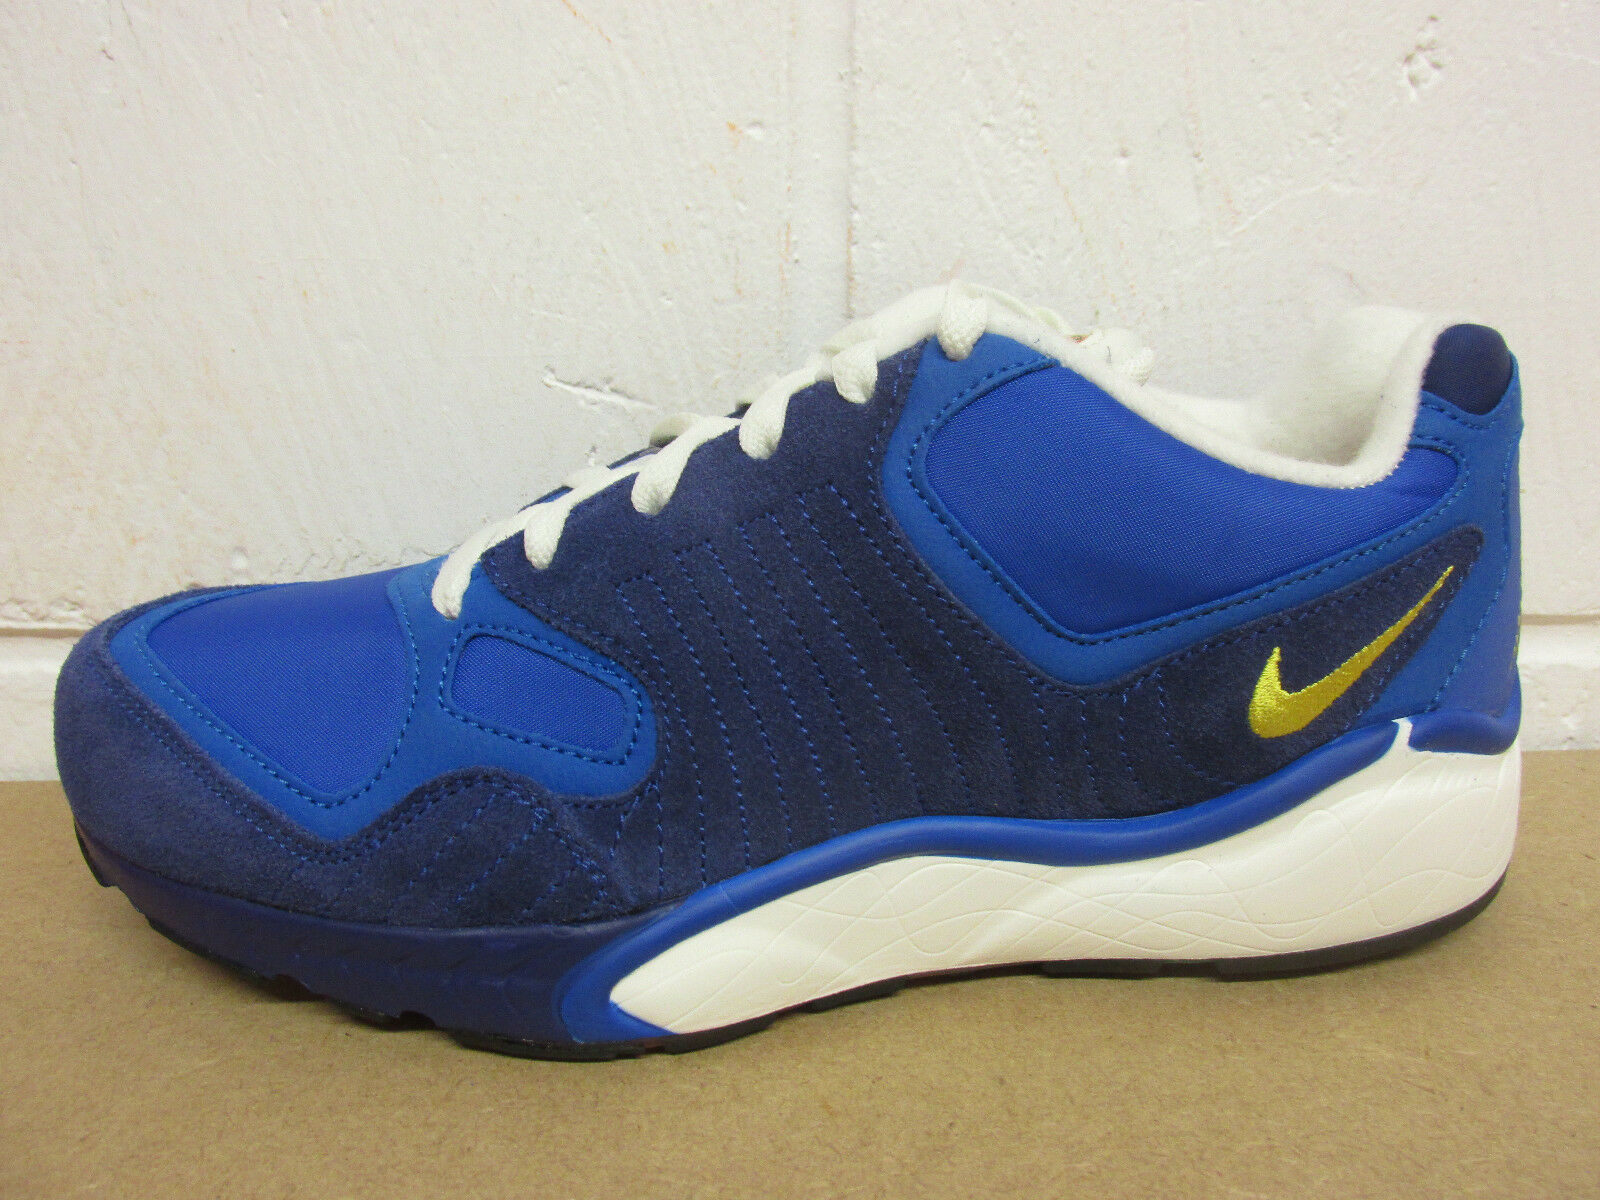 newest 12bb2 d1ad2 Nike Air Zoom Talaria 16 homme fonctionneHommest chaussures Trainers  Trainers Trainers df5d8b